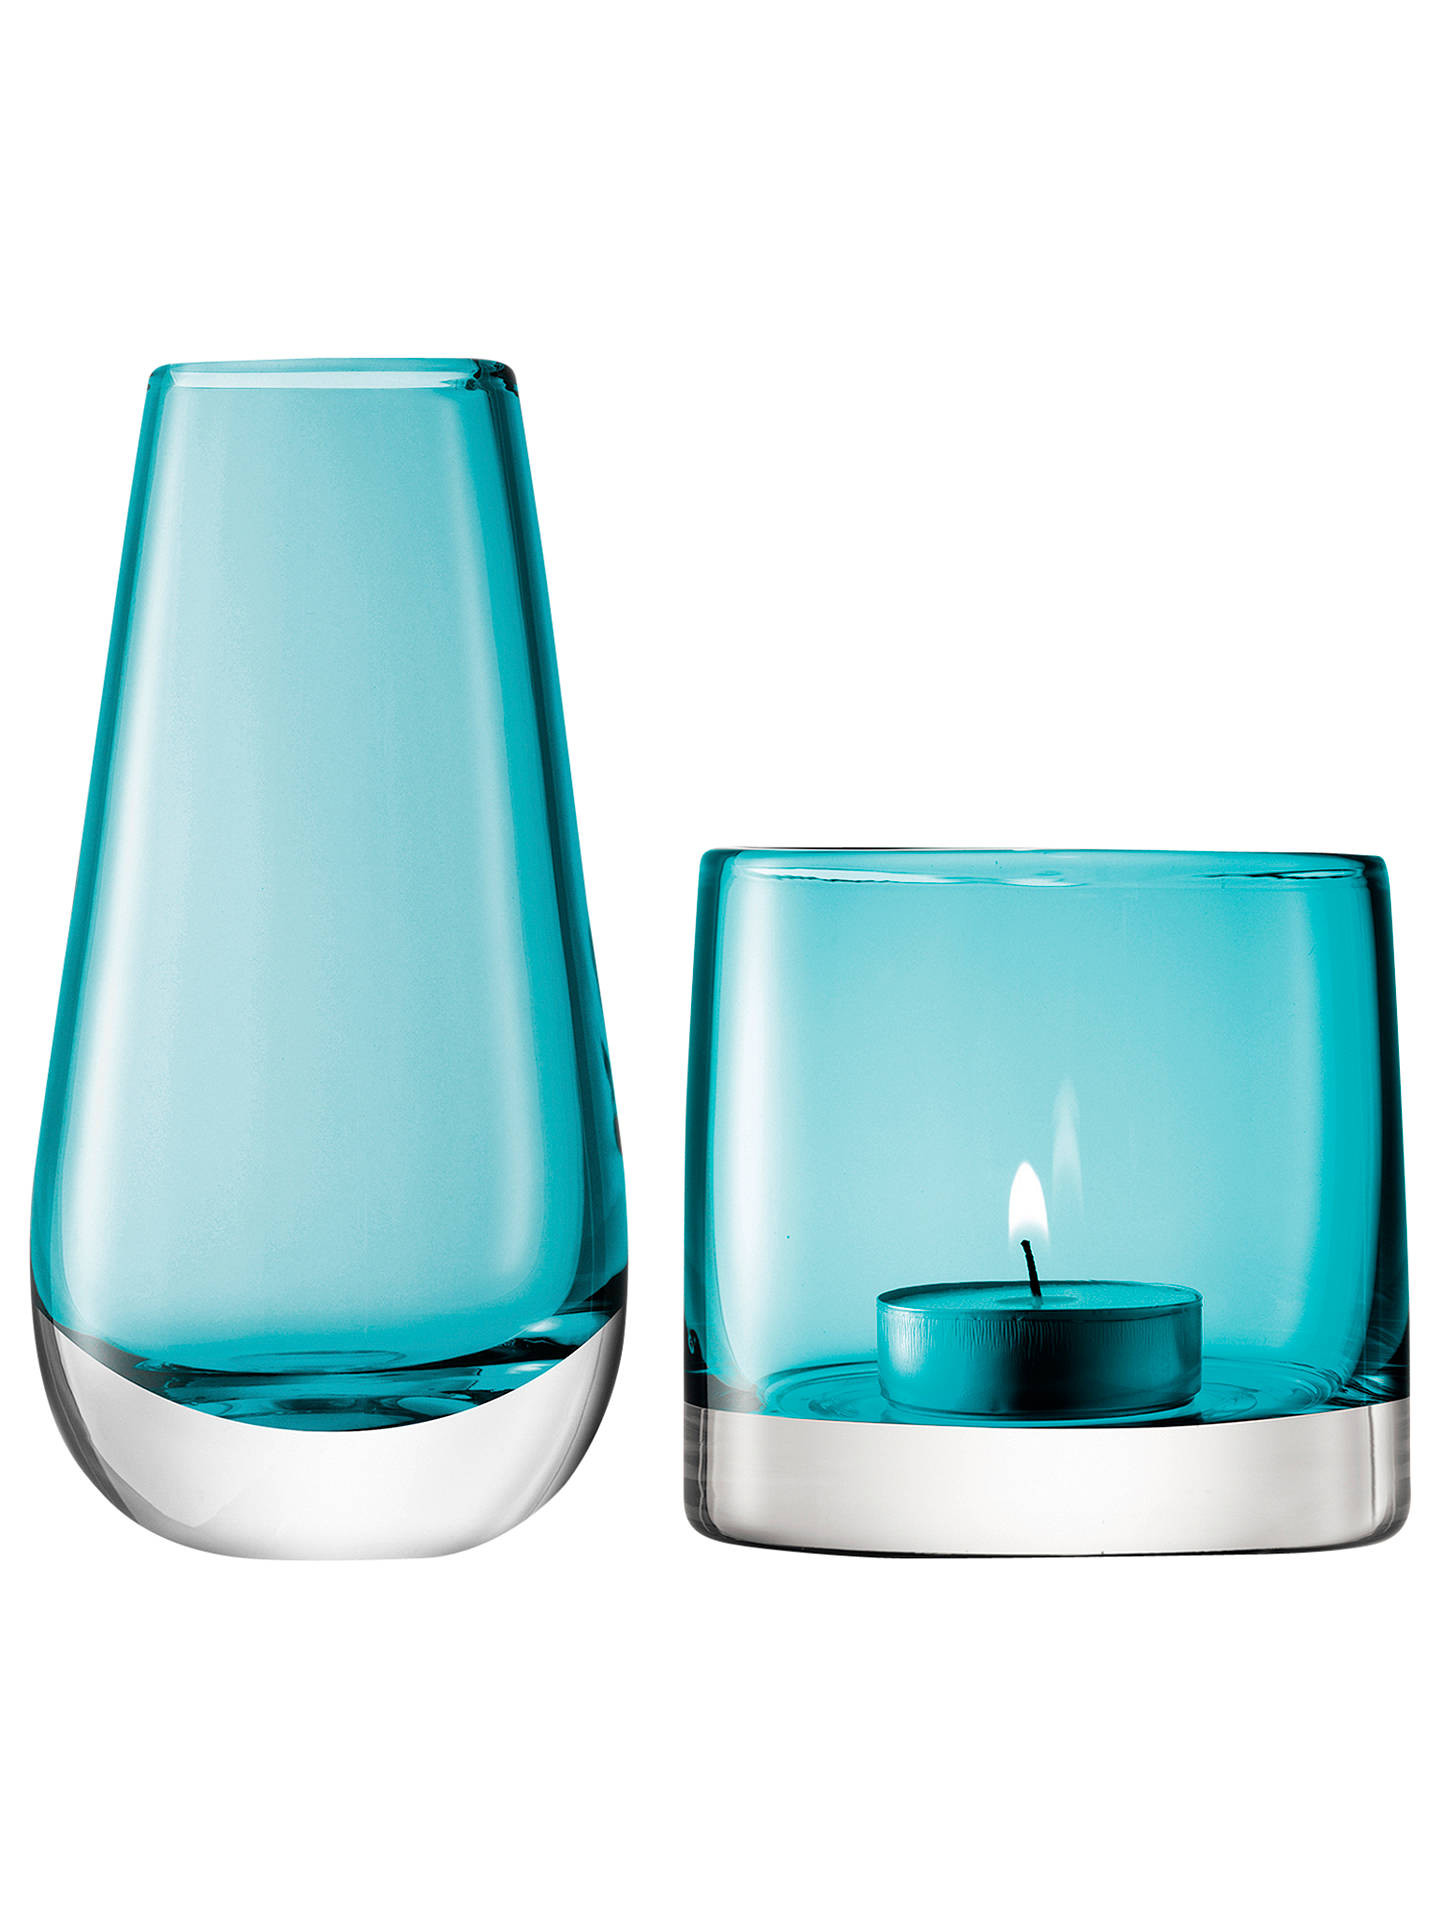 kate spade glass vase of bud vases small glass vases with strong suction cups for t pertaining to buylsa international flower bud vase and tealight holder peacock online at johnlewis com